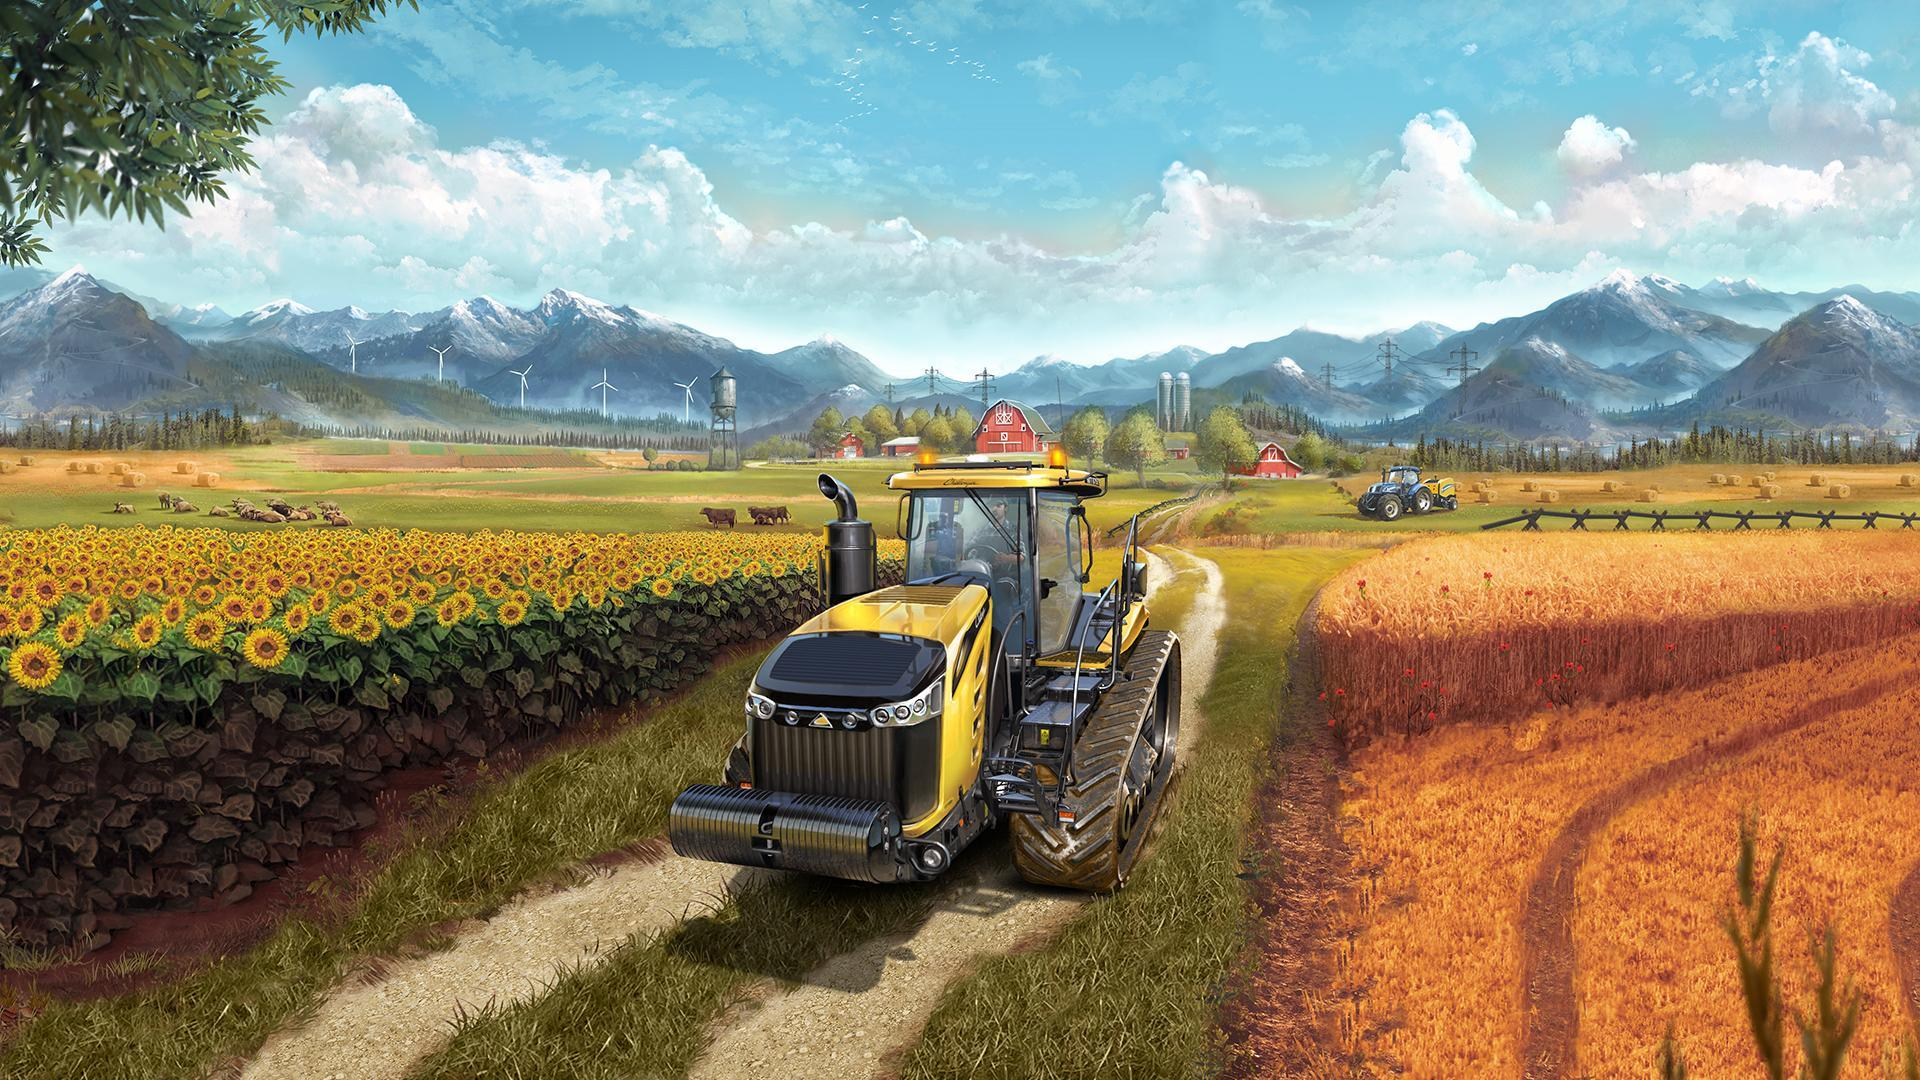 farming simulator 17 review love riding tractors ploughing fields and shooting hoops there 39 s. Black Bedroom Furniture Sets. Home Design Ideas